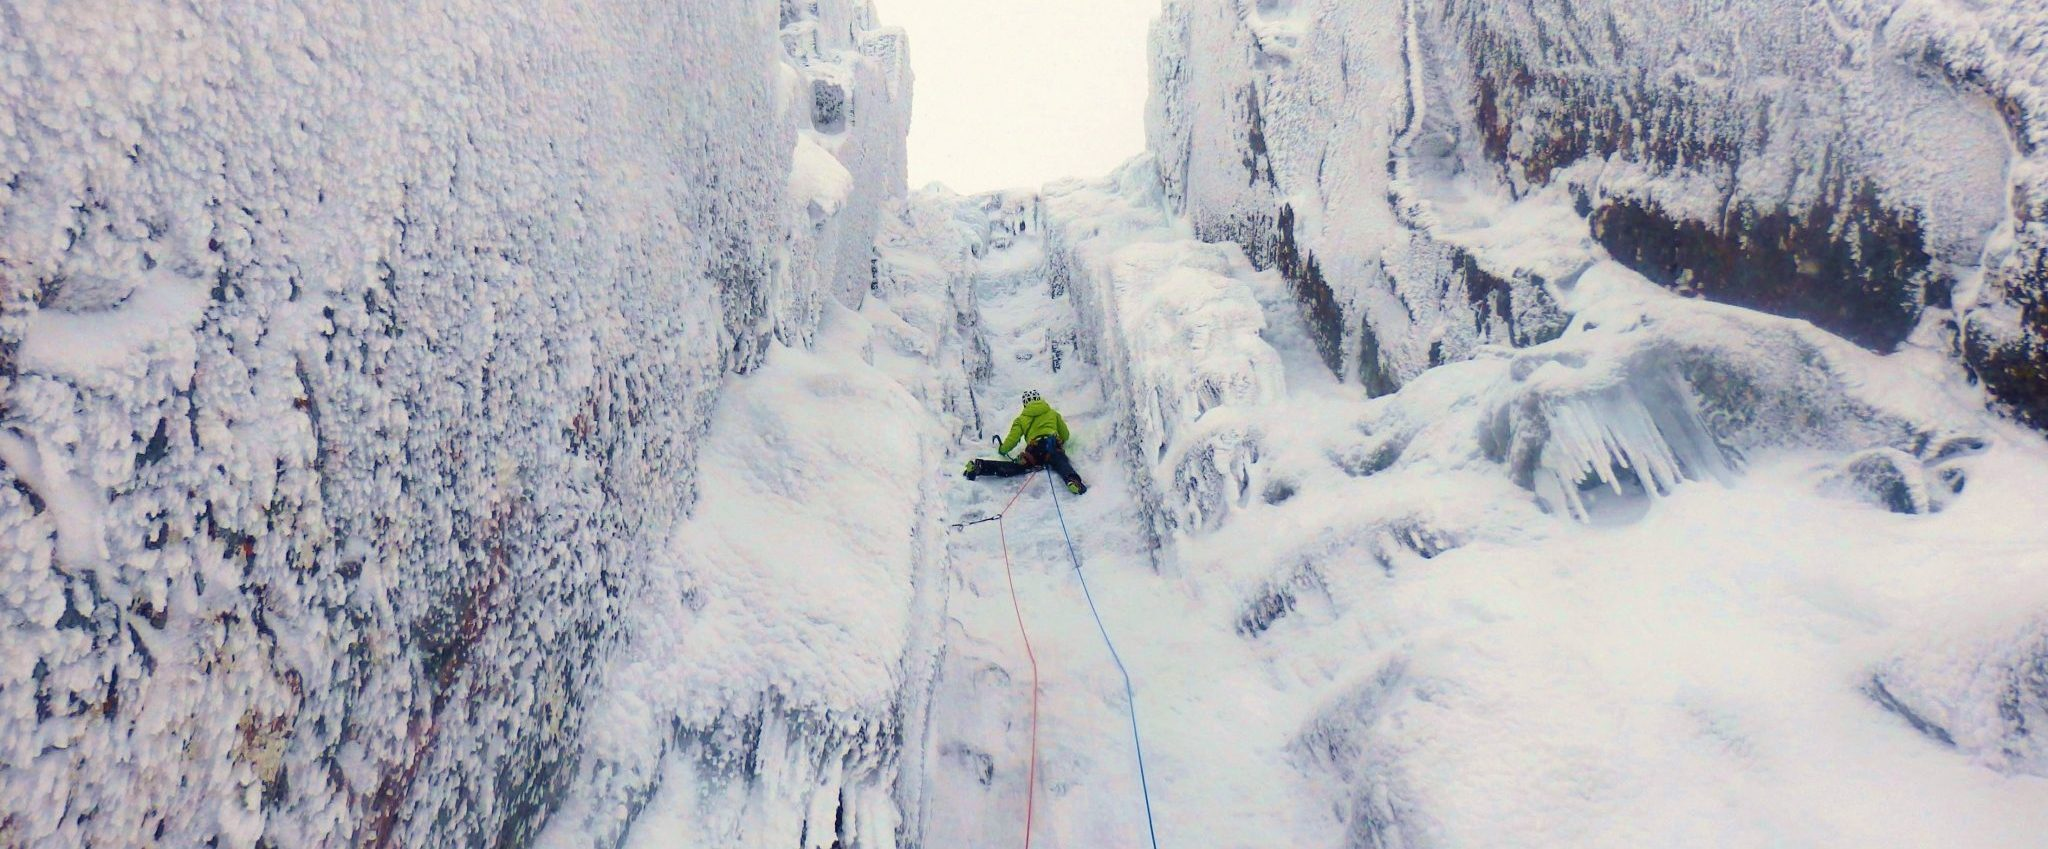 Performance Winter Climbing